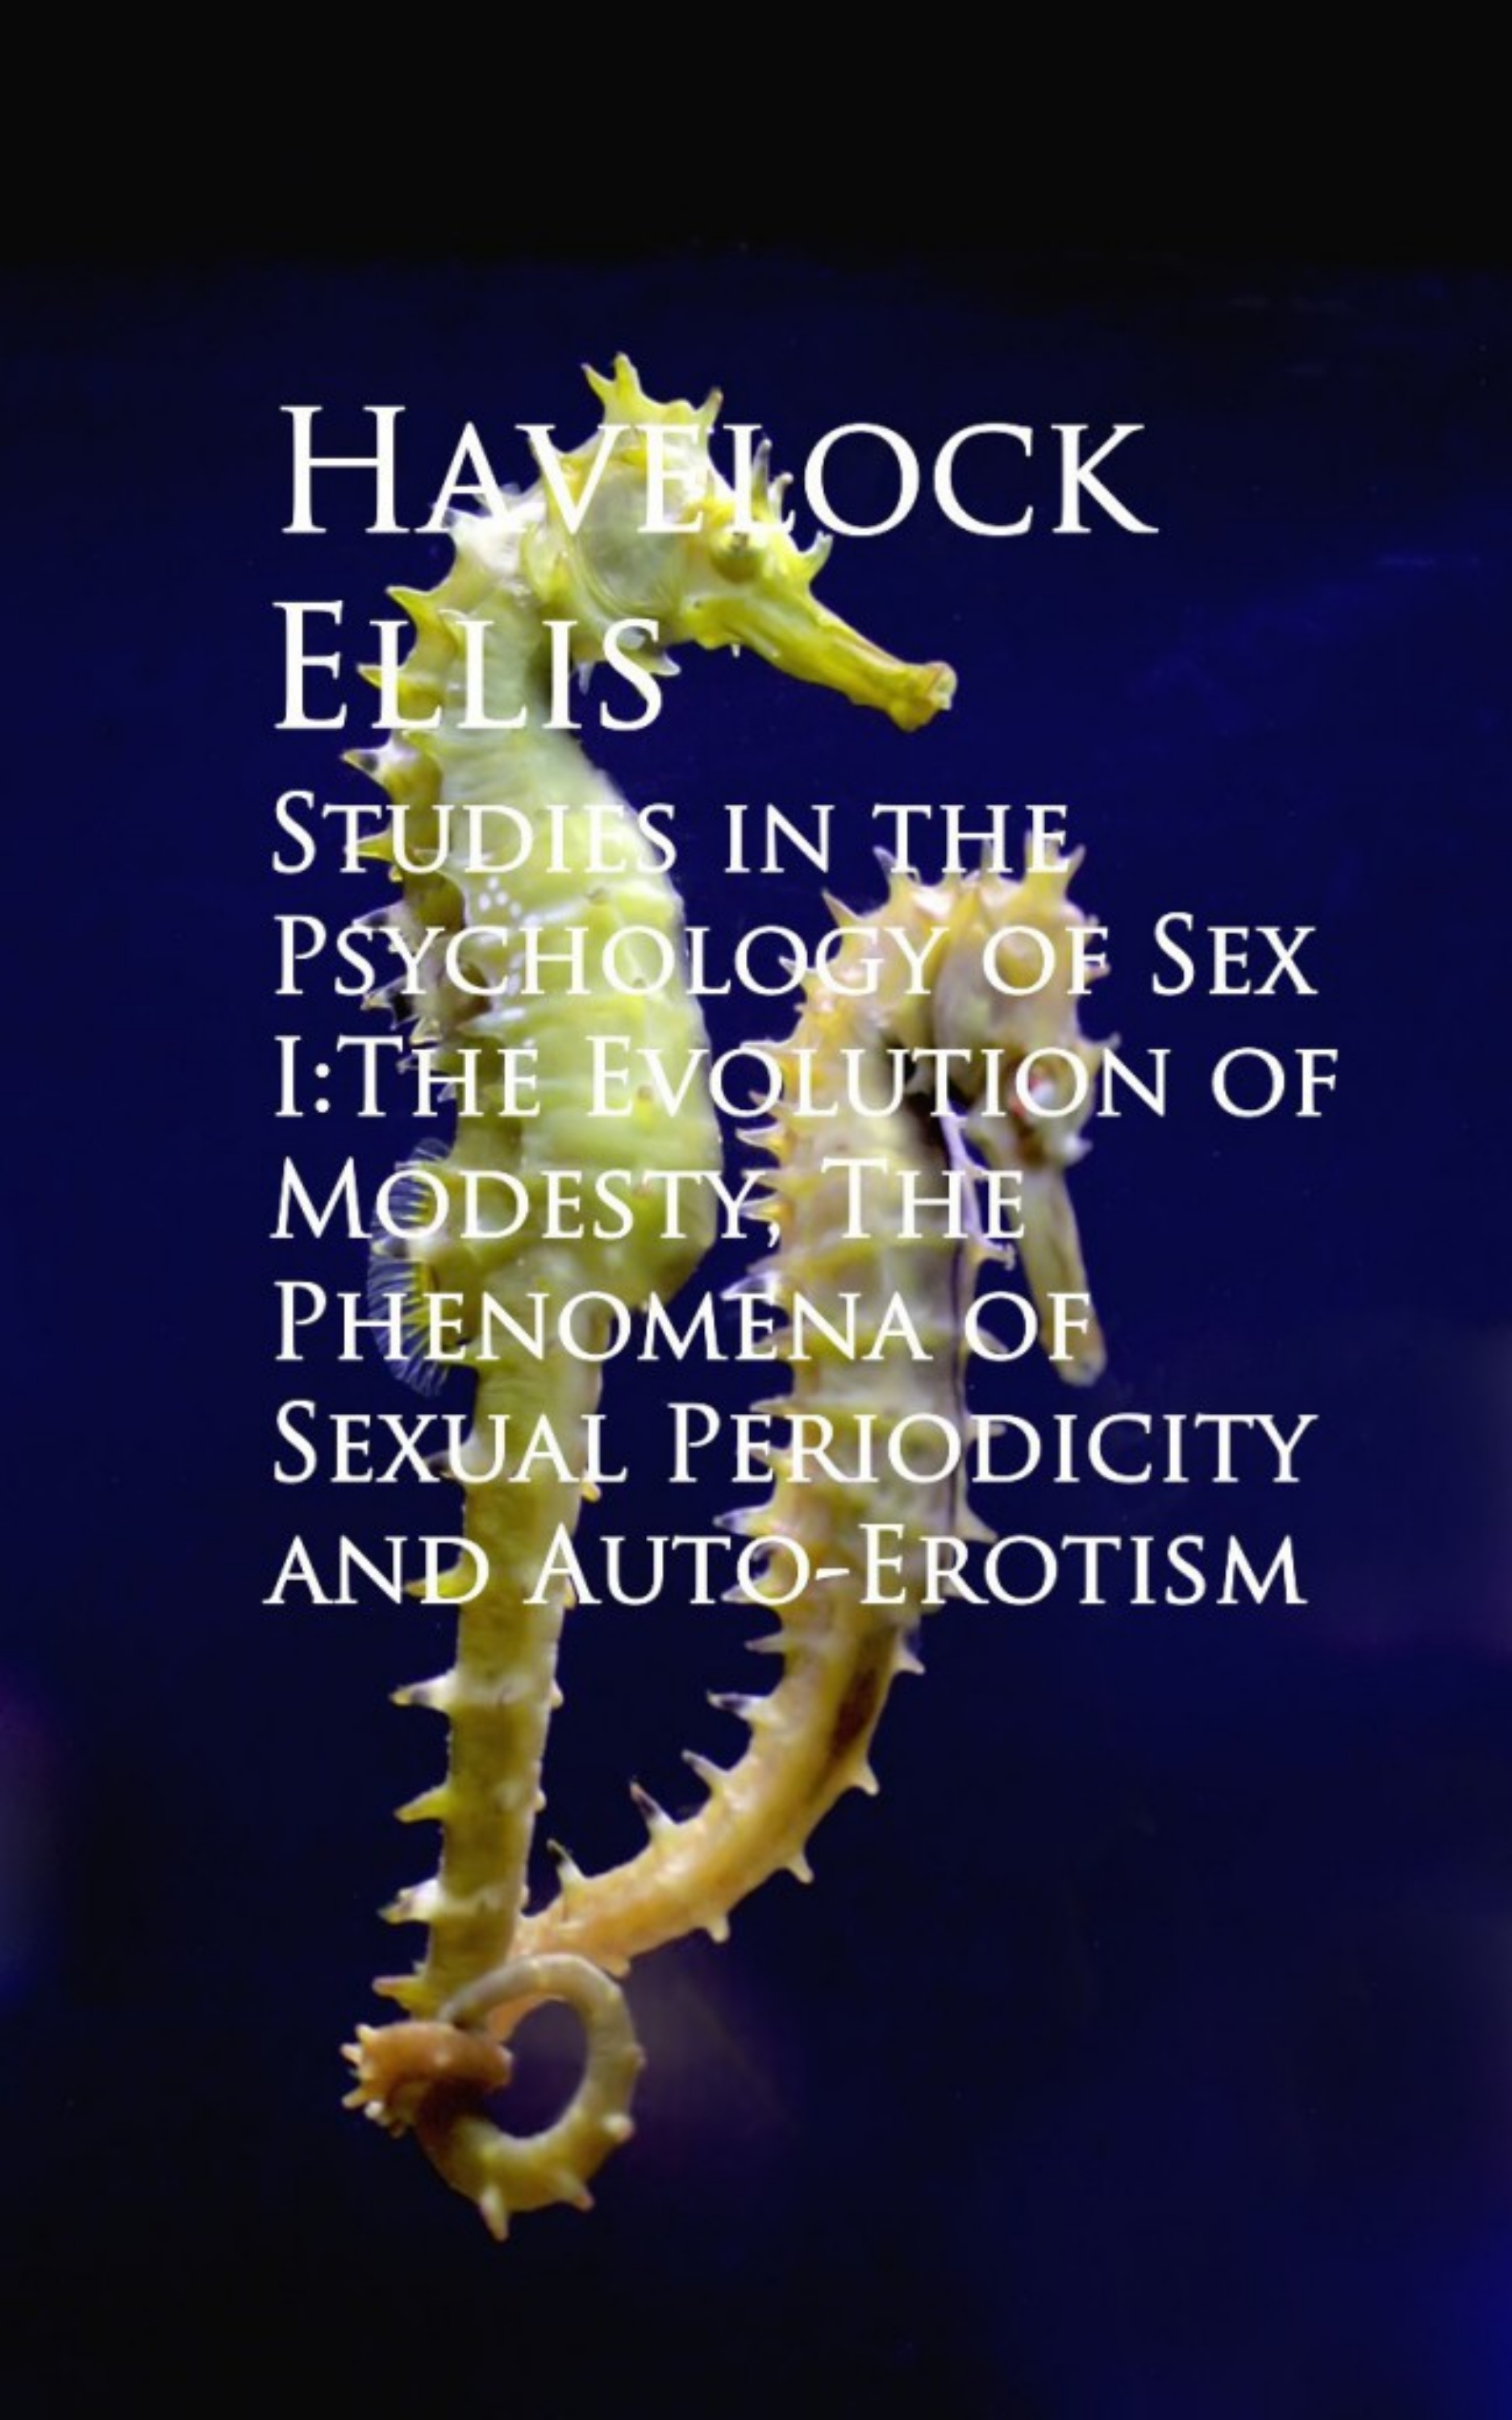 Havelock Ellis Studies in the Psychology of Sex I:The Evolution ual Periodicity and Auto-Erotism studies on hadron structure functions and gldap evolution equations